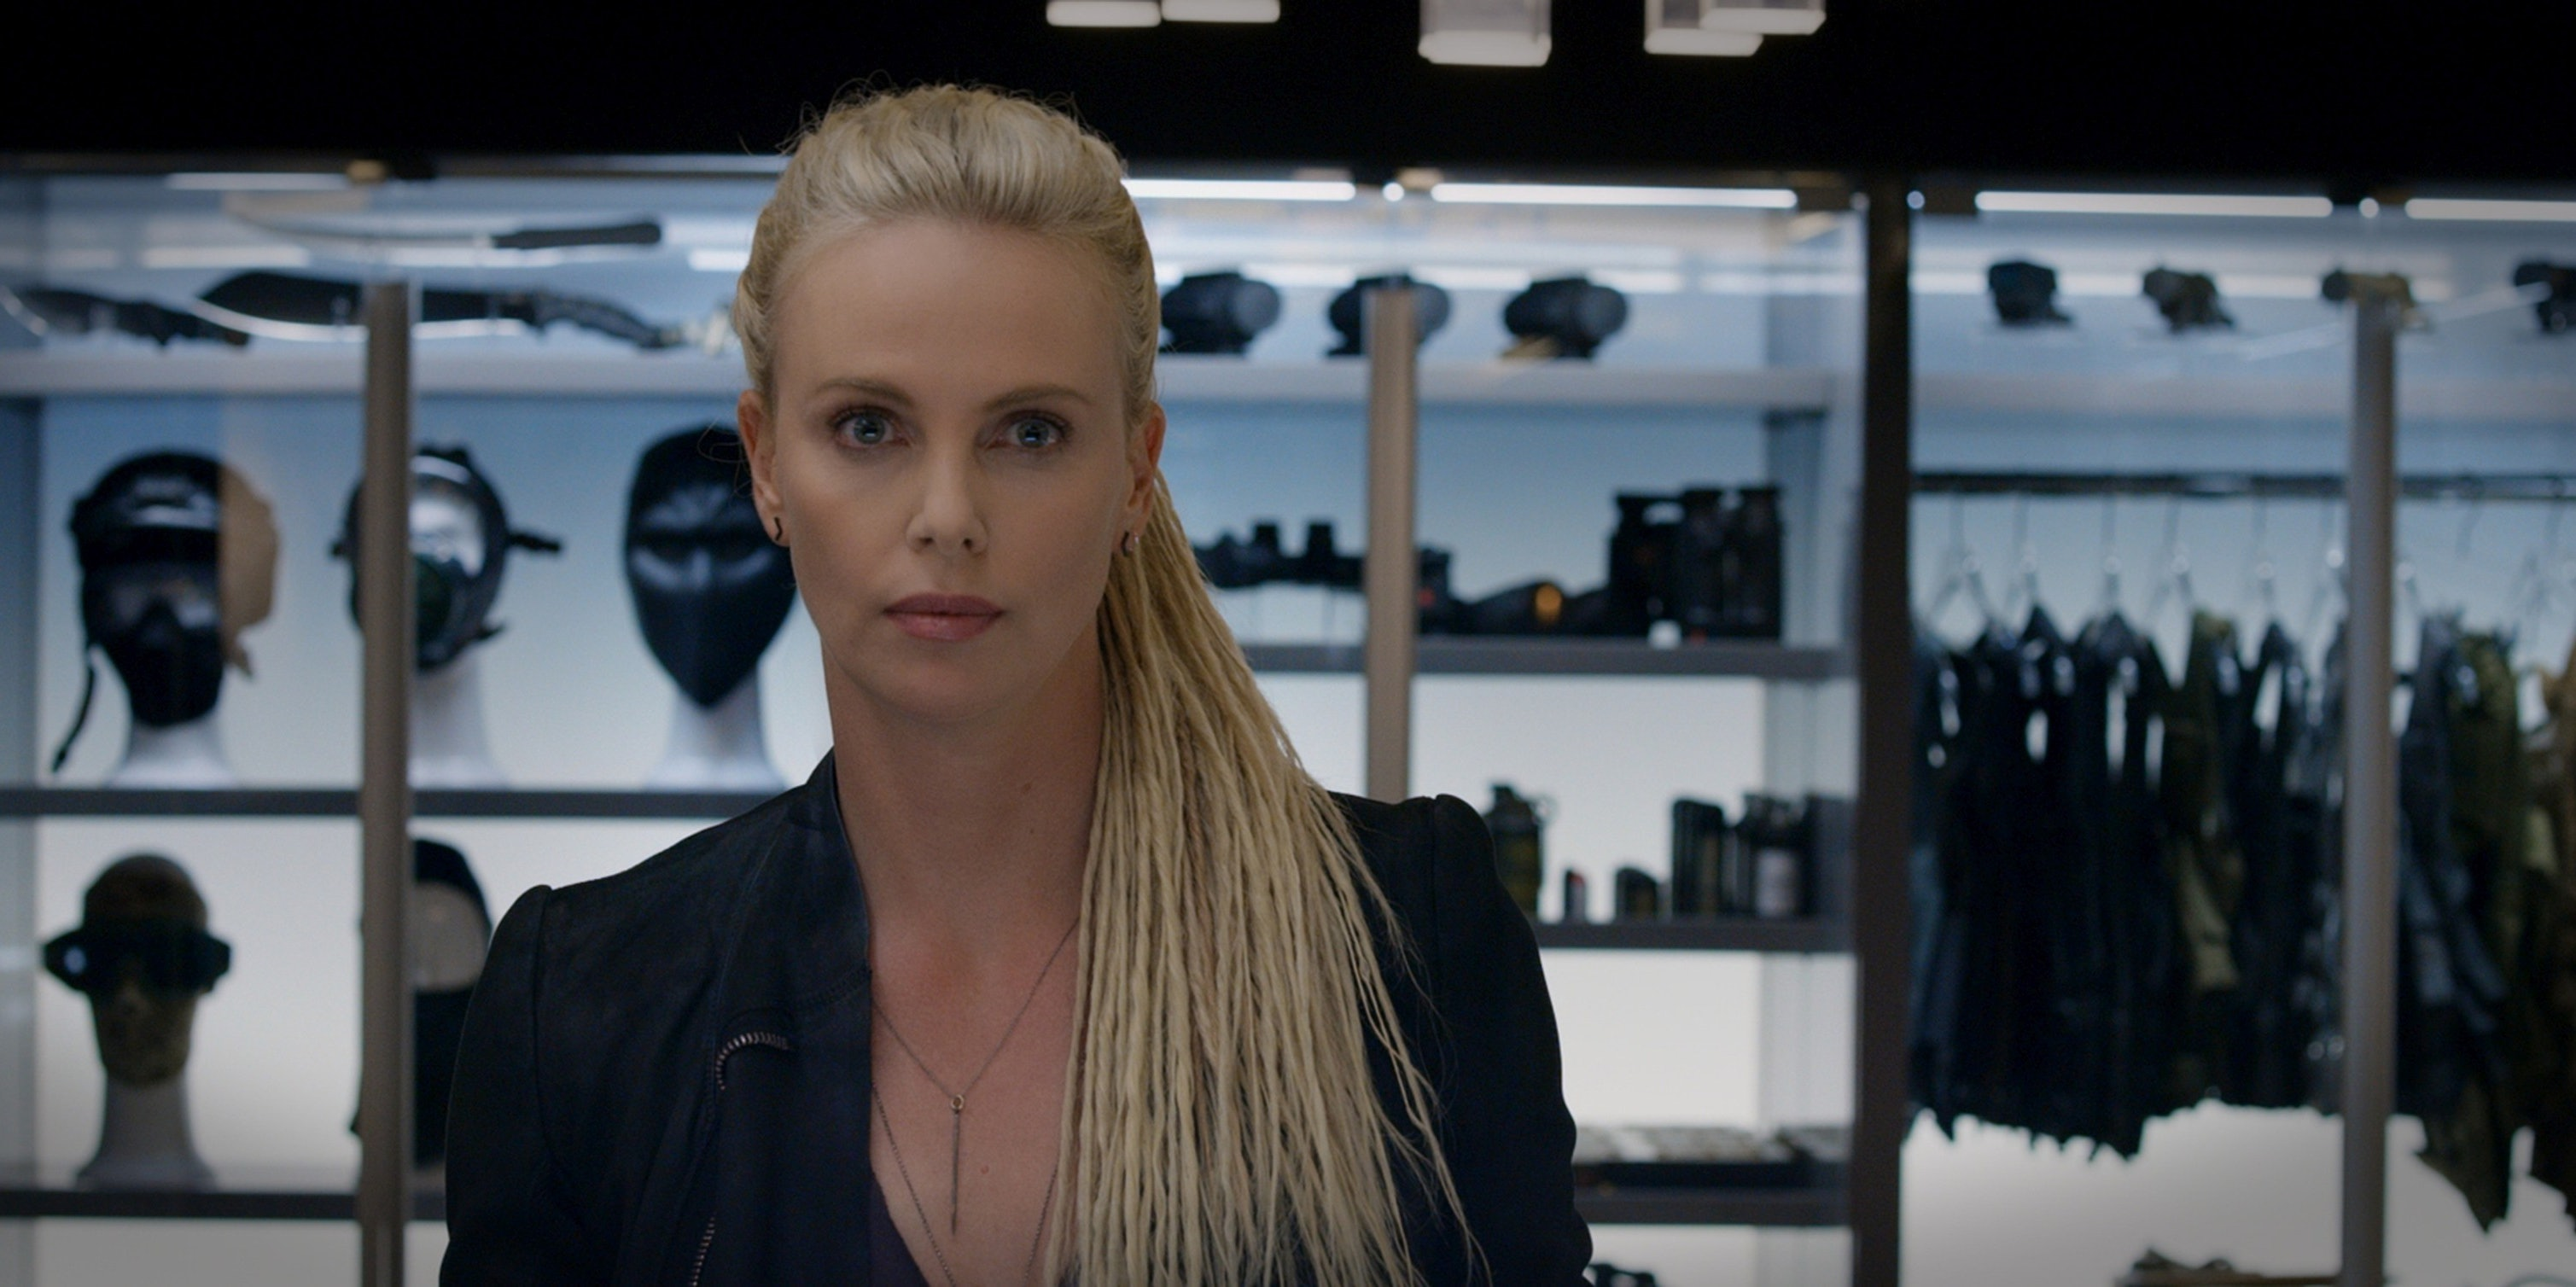 charlize theron 39 s 39 fast 8 39 villain is the most terrifying yet inverse. Black Bedroom Furniture Sets. Home Design Ideas